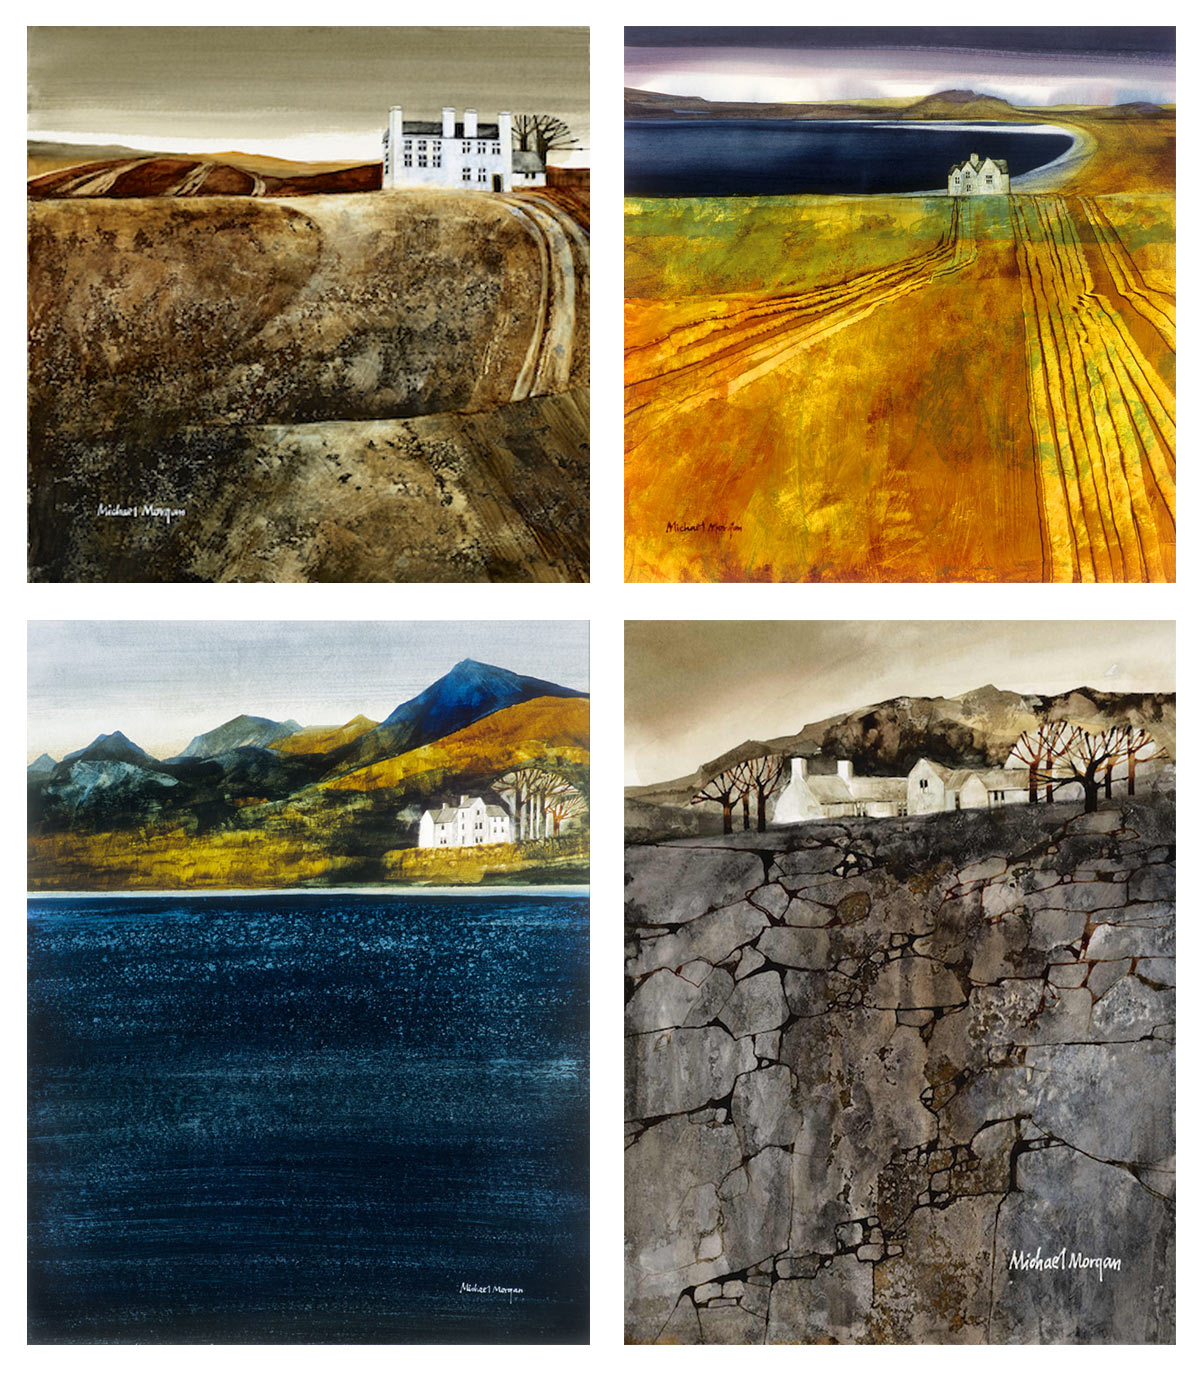 Michael Morgan Artist Limited Edition Prints For Sale